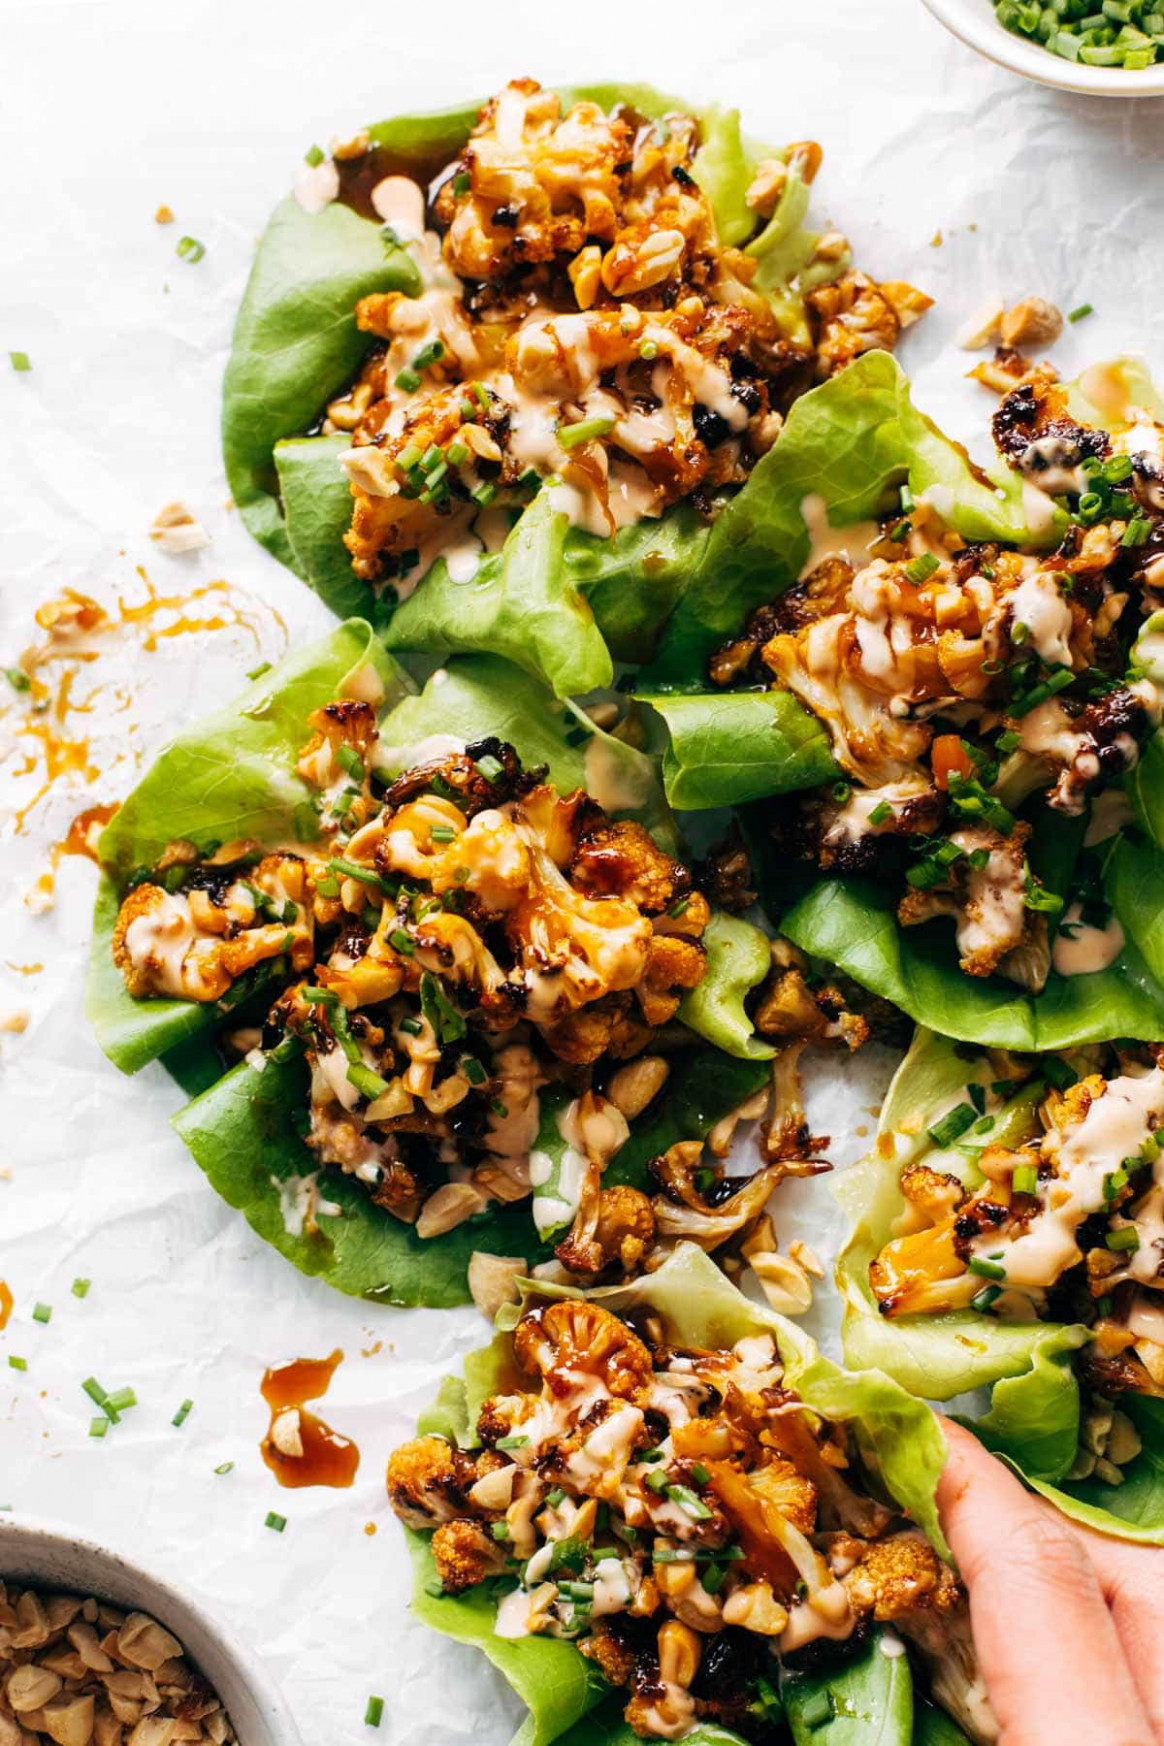 Korean BBQ Style Cauliflower Lettuce Wraps Recipe - Pinch of Yum - recipes korean food